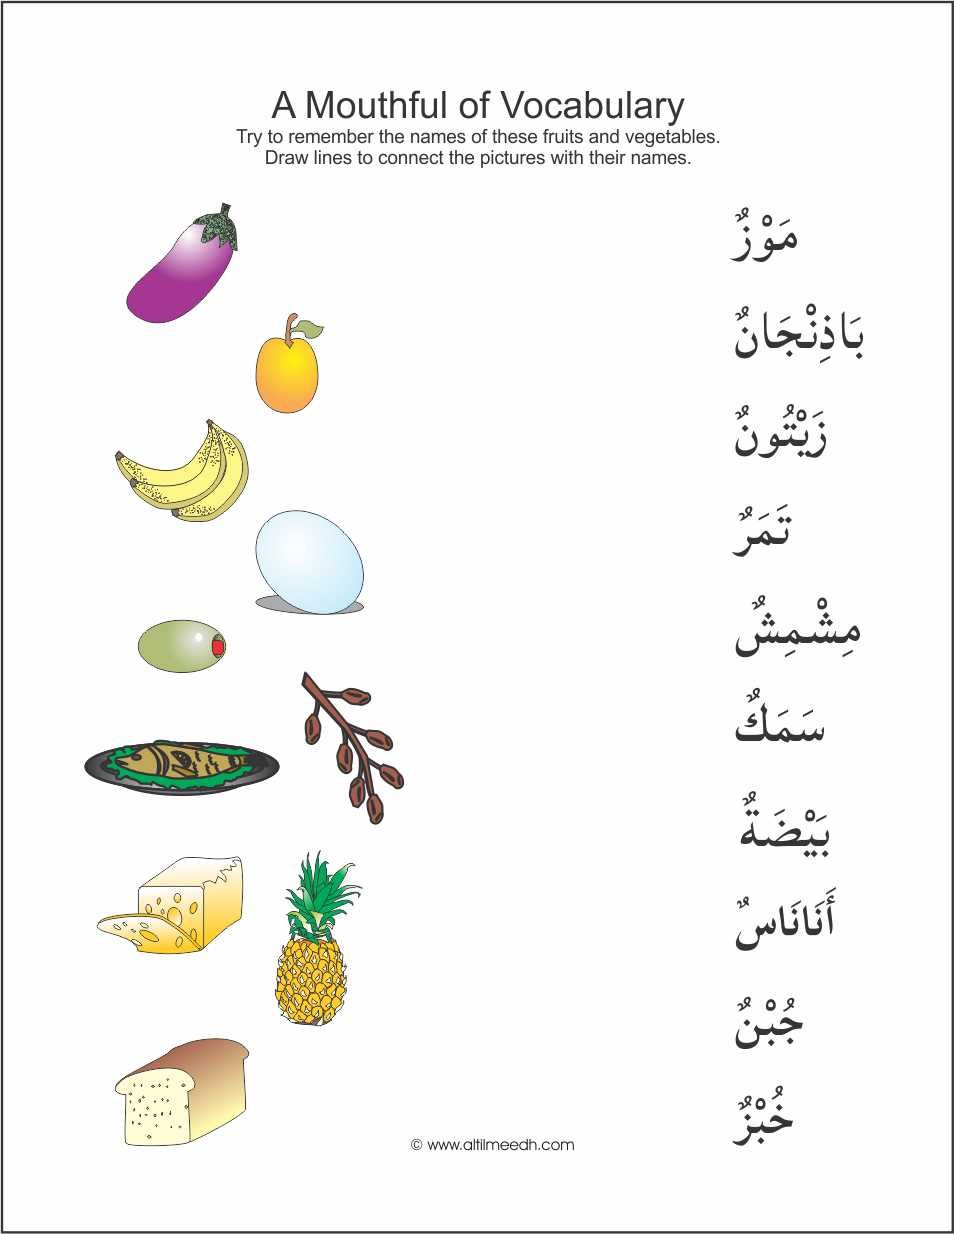 mouthful of vocabulary image 3 arabic language pinterest learning arabic arabic lessons. Black Bedroom Furniture Sets. Home Design Ideas